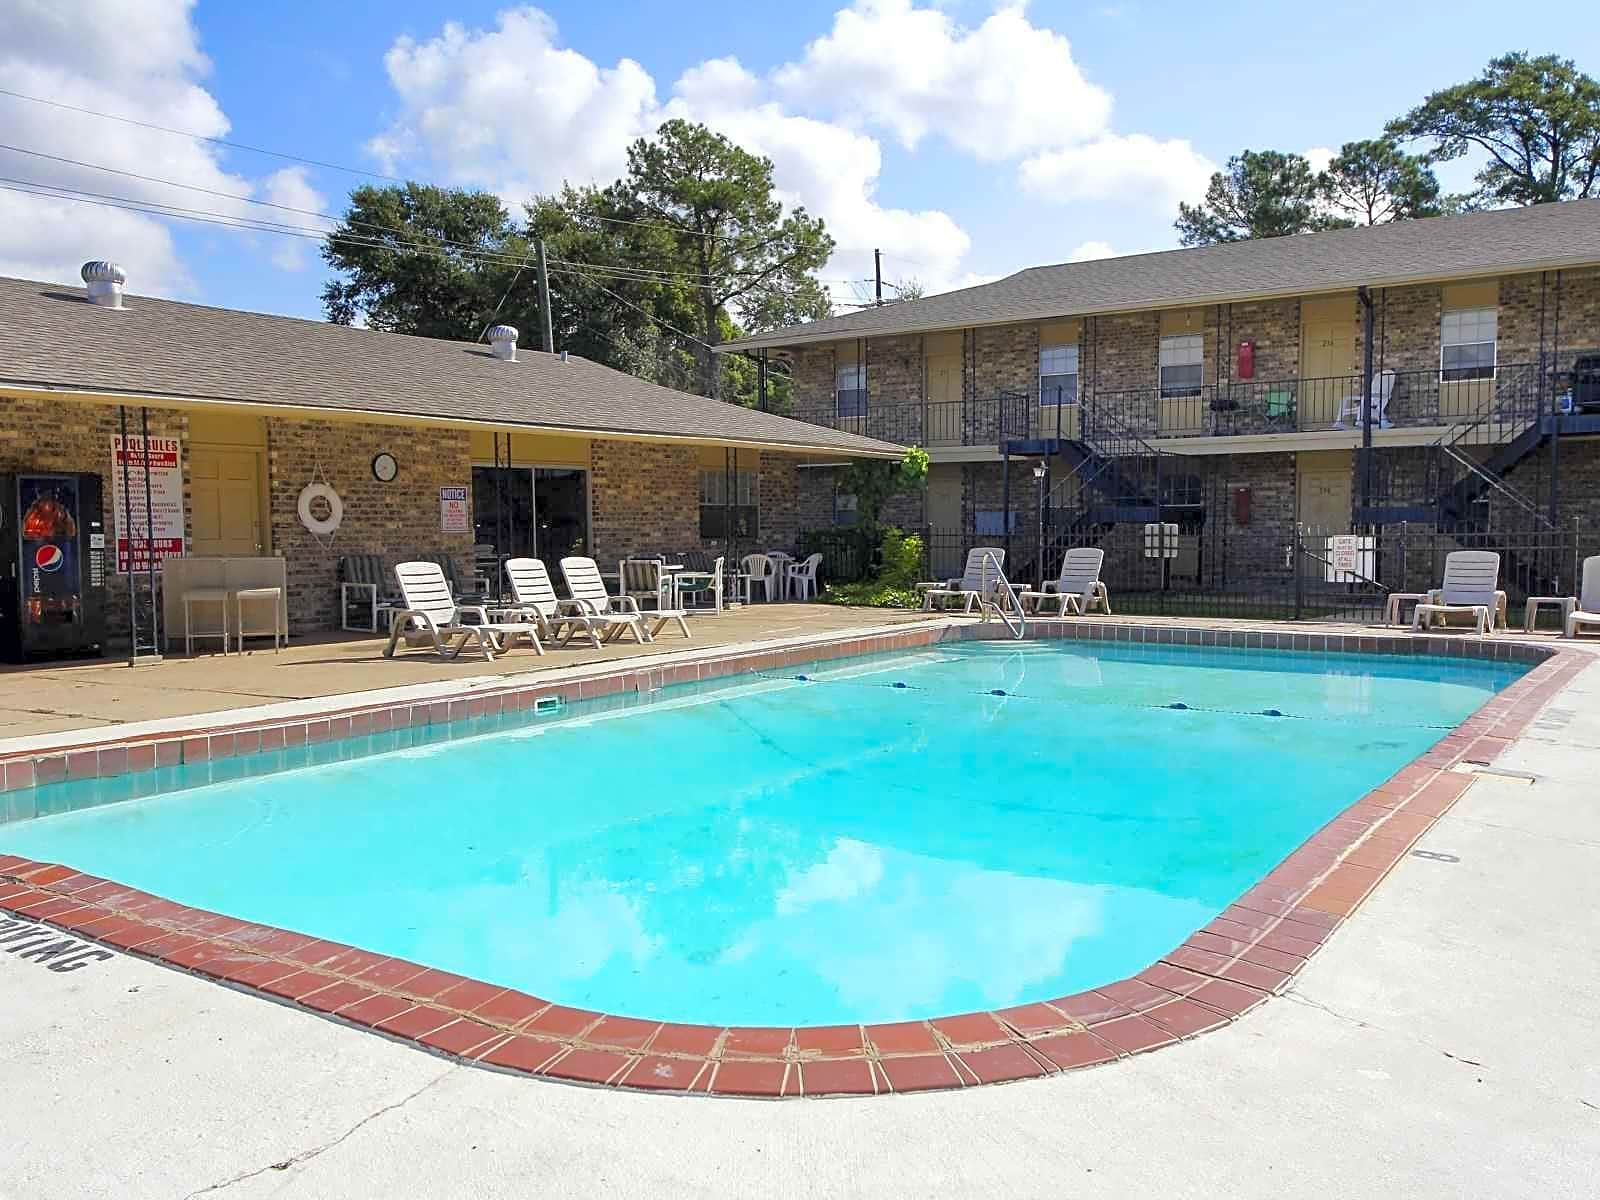 Apartment Guide in Gulfport, MS - yellowpages.com